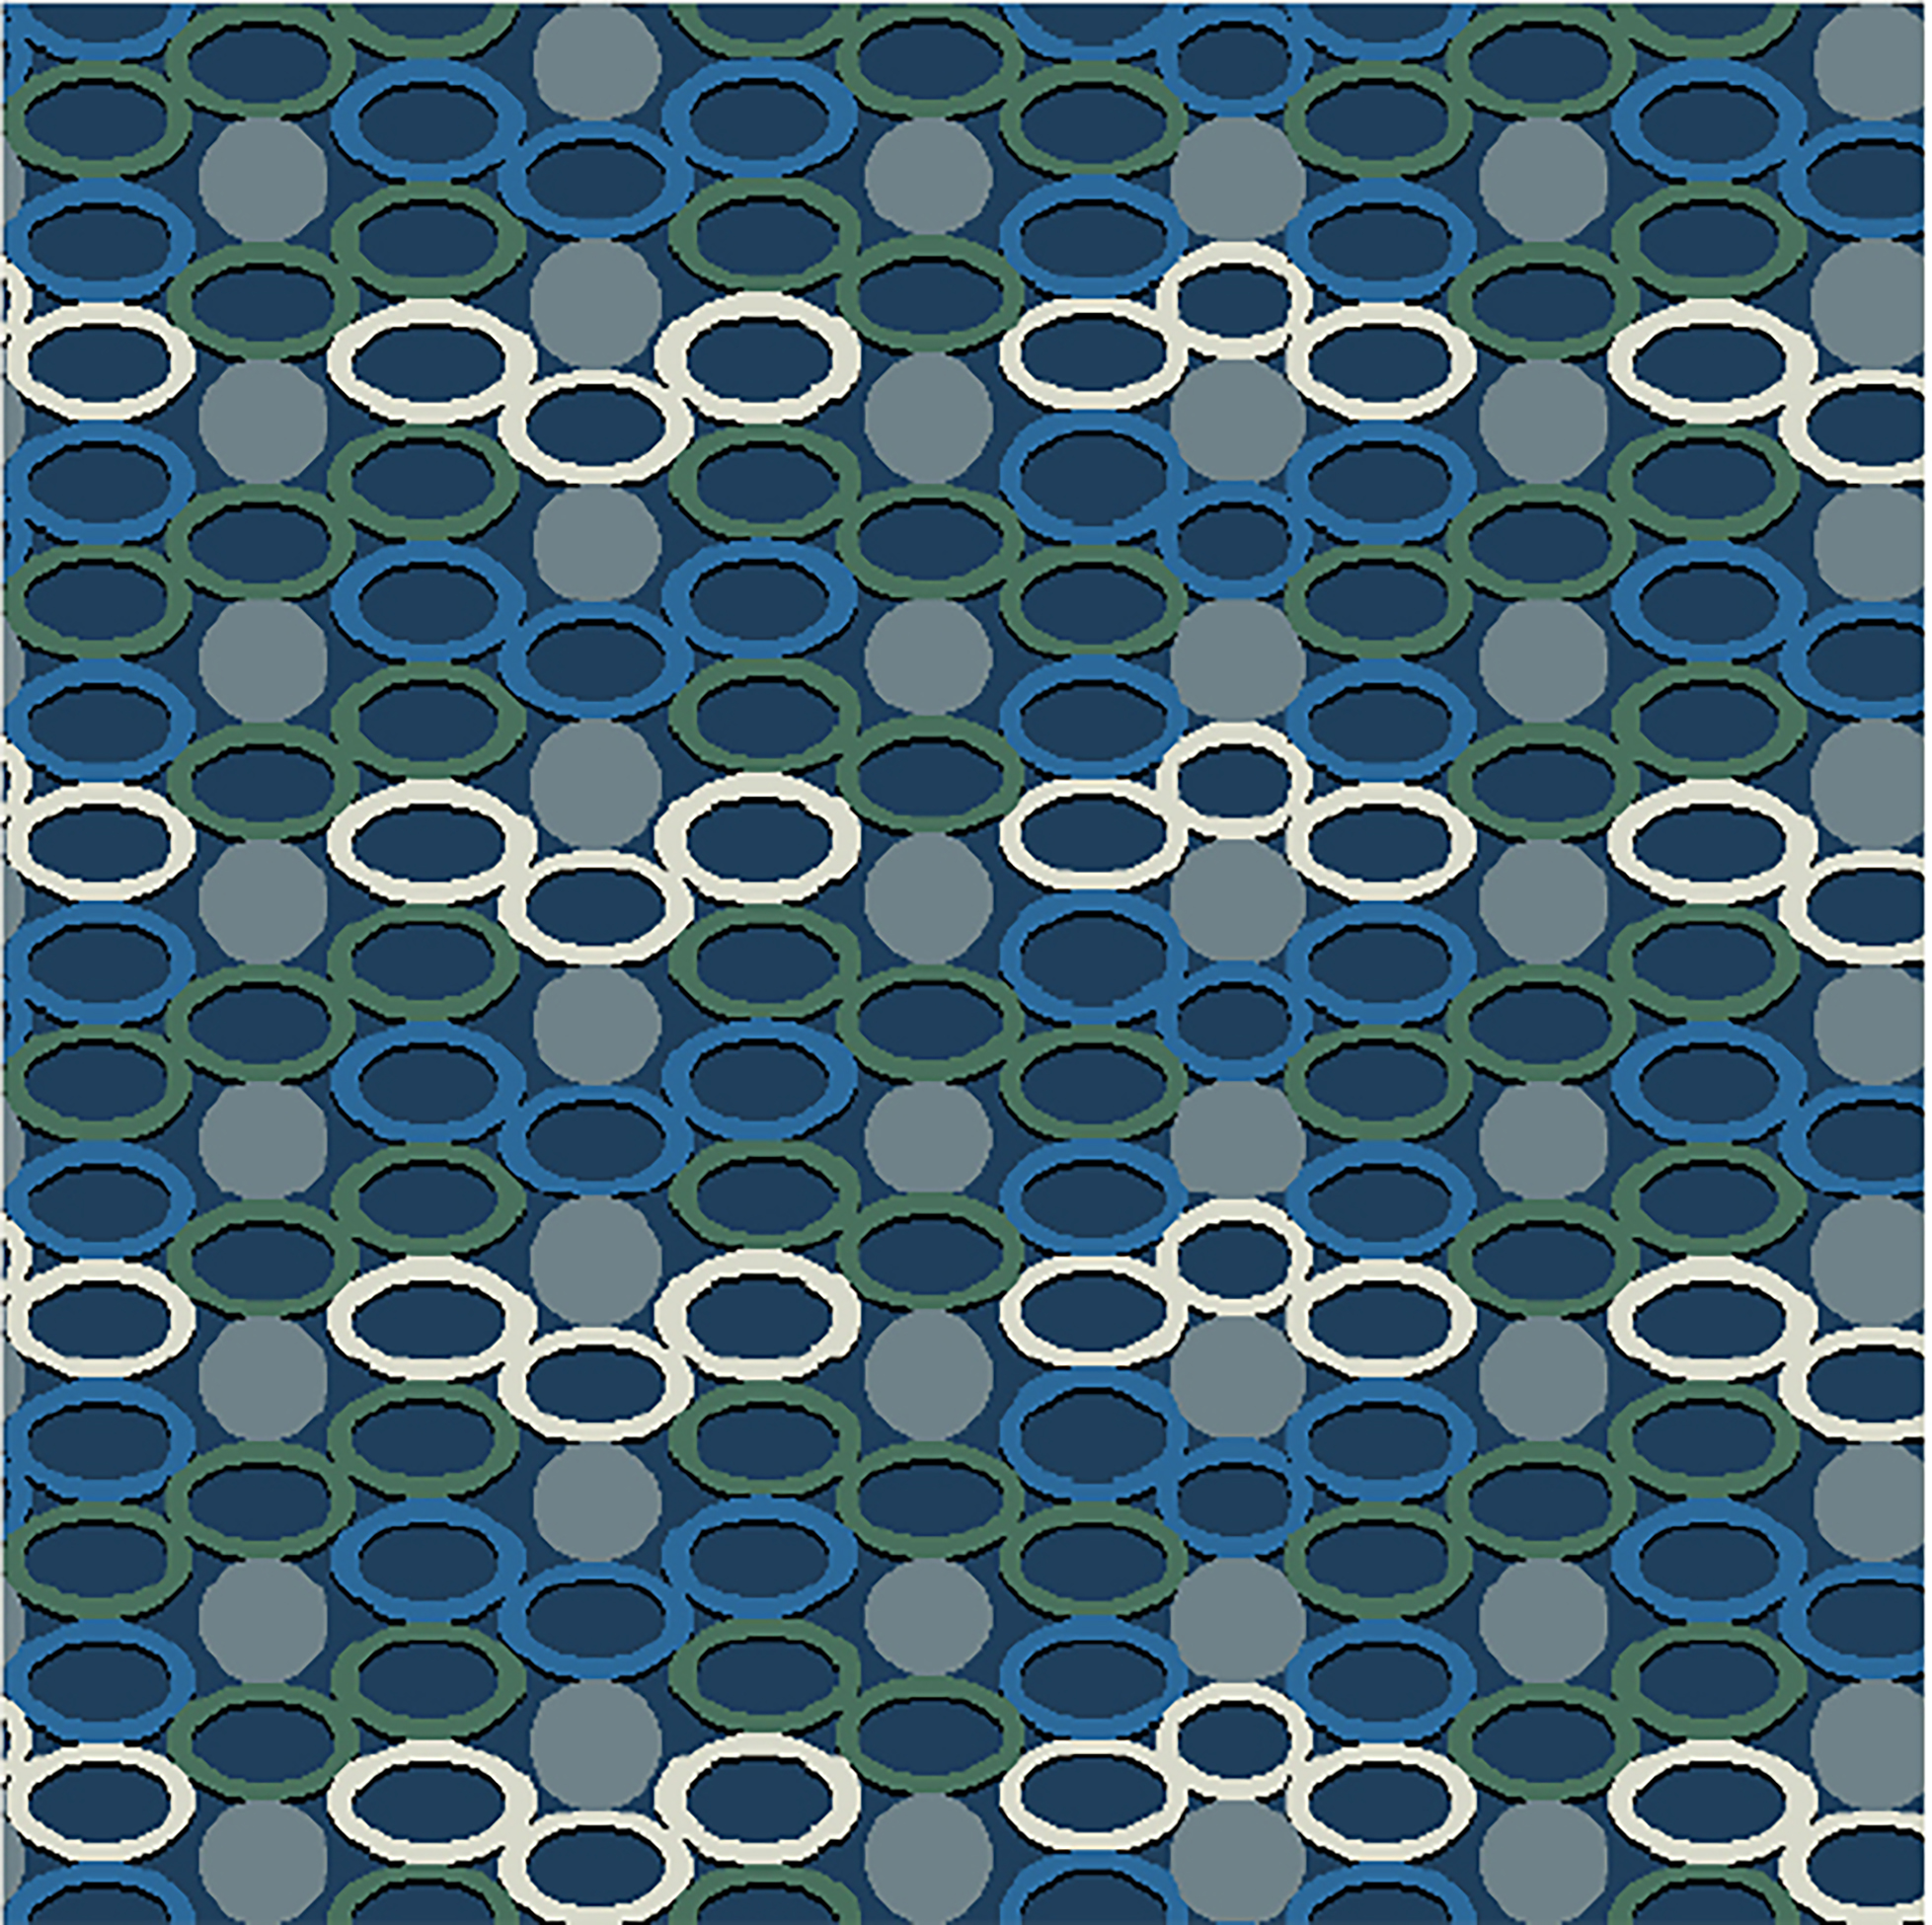 Abstracture-IMAGE 18.jpg